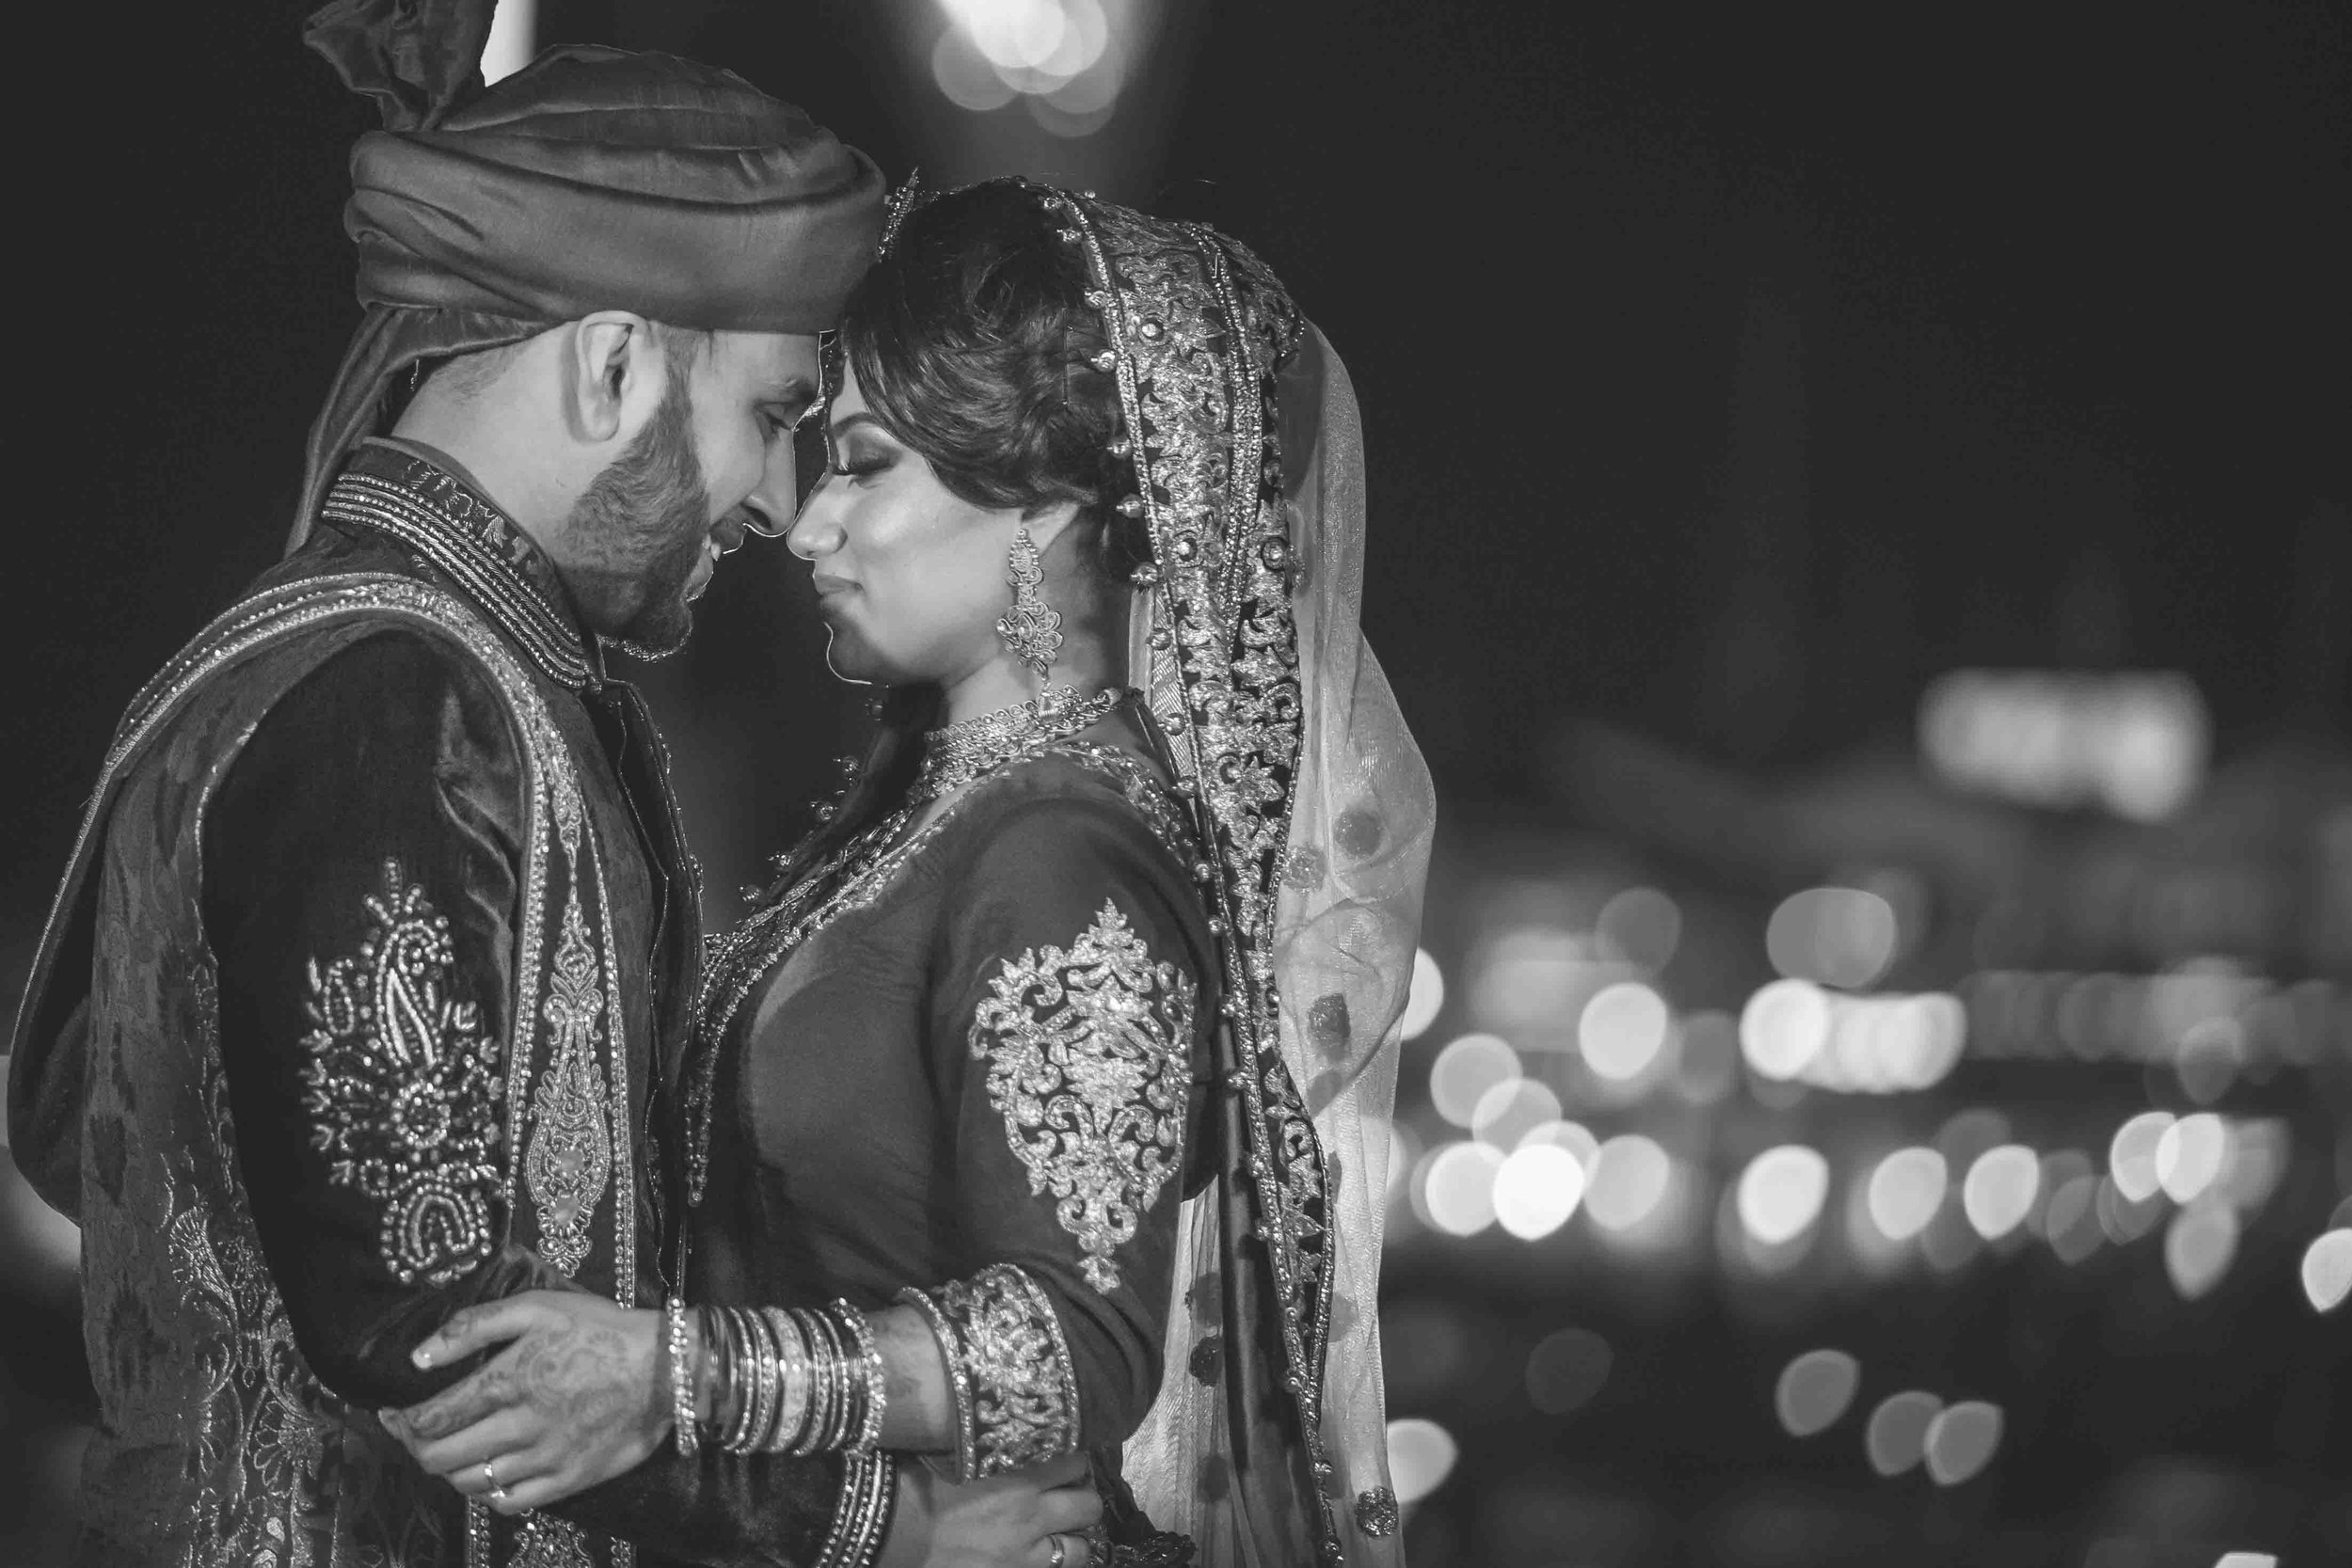 Asian Wedding Photographer Opu Sultan Photography portsmouth Scotland Edinburgh Glasgow London Manchester Liverpool Birmingham Wedding Photos prewed shoot Luko & Rujina Blog-31.jpg